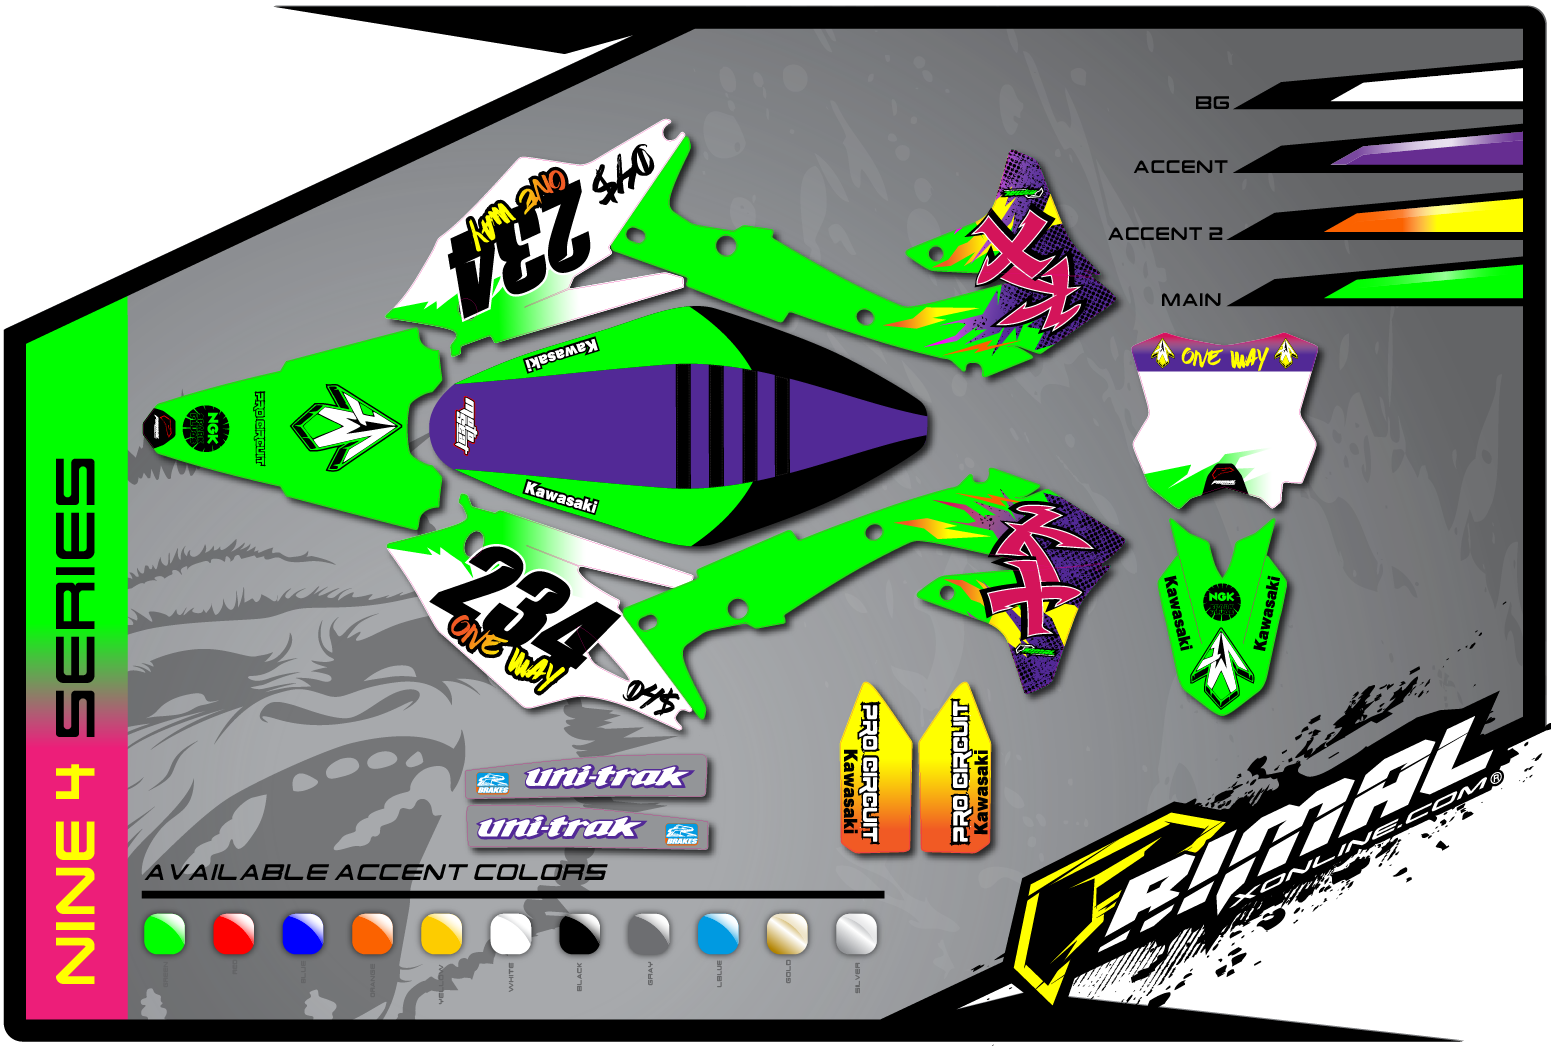 primal-x-motorsports-mx-graphics-motocross-graphics-kxf-450-kxf-250-kx125-kx-250-kx-nine-four